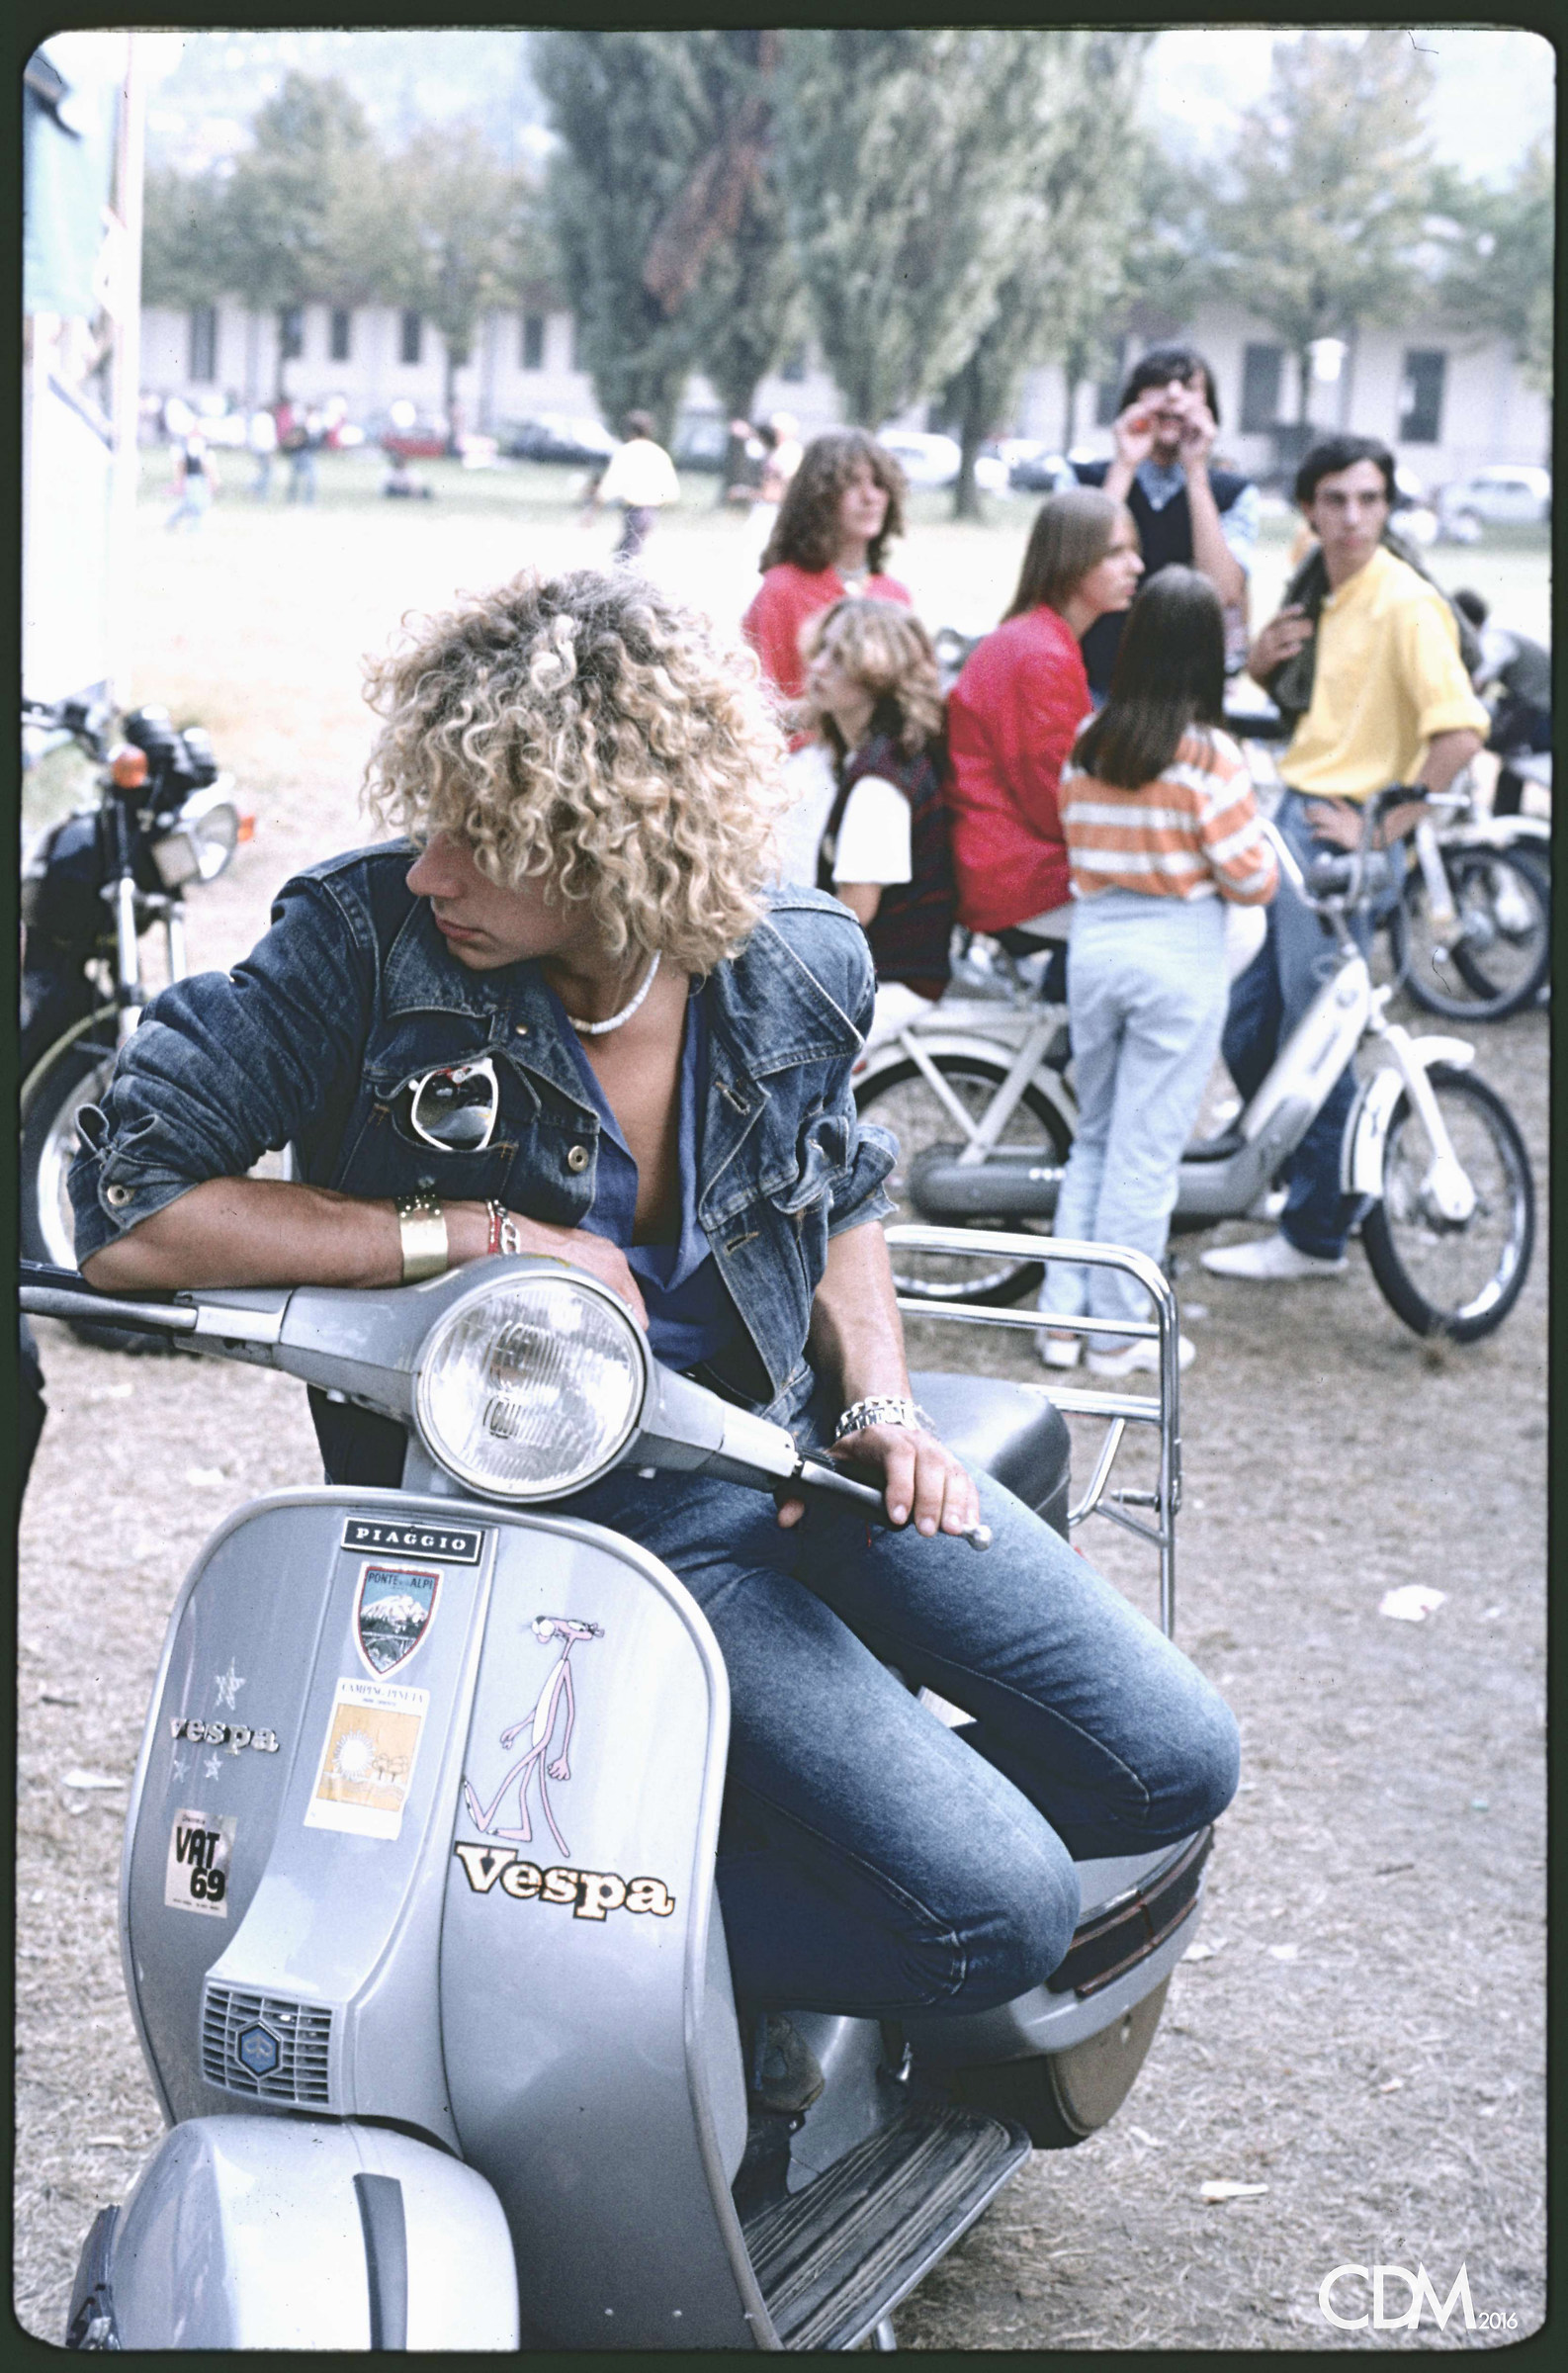 1980 alle giostre...